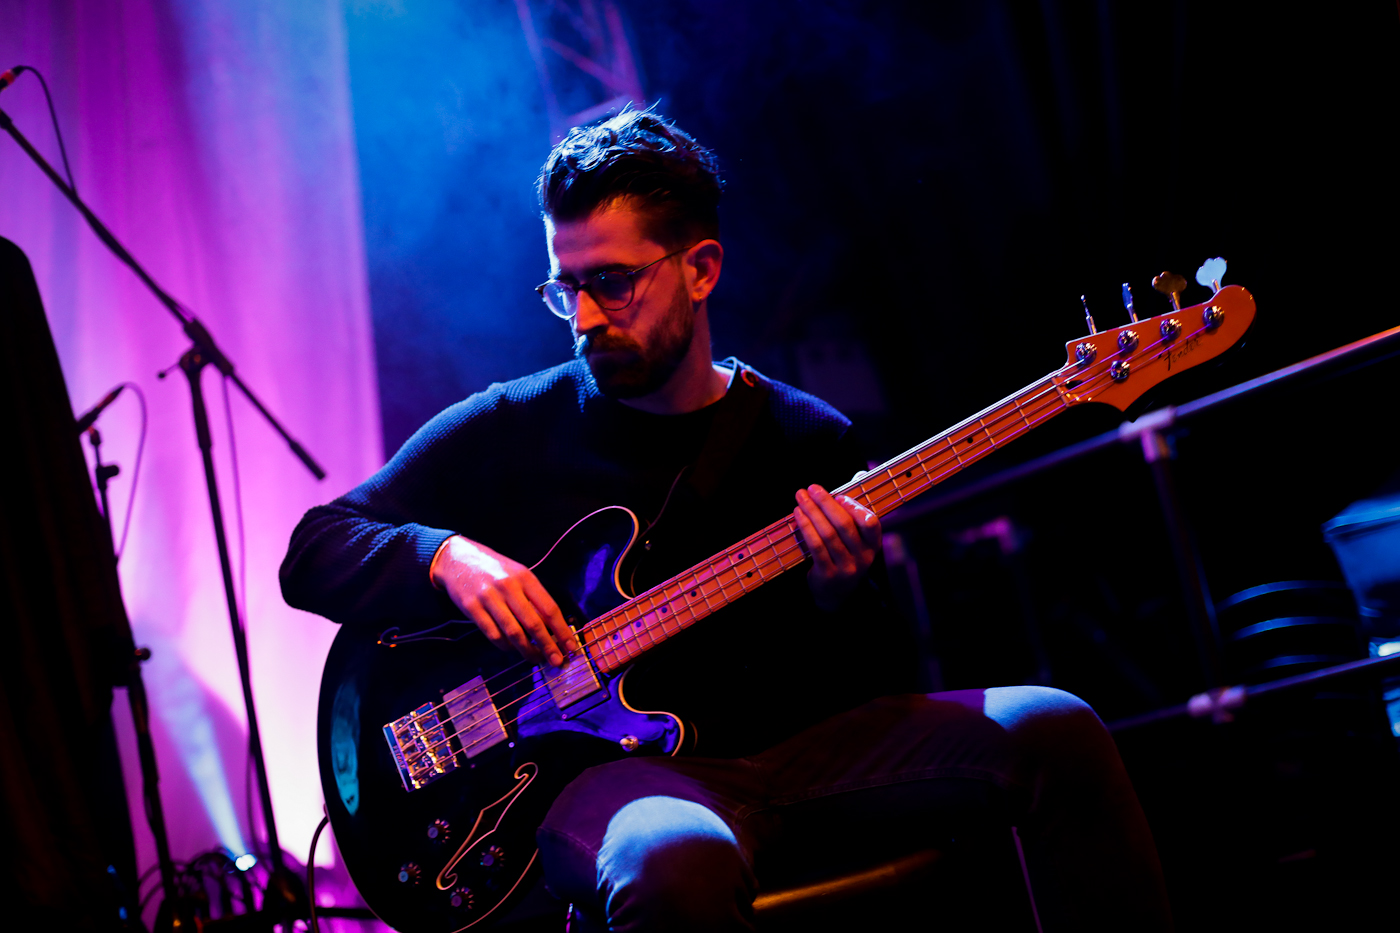 Tandem Felix at The Button Factory on 16 June 2019 by Yan Bourke